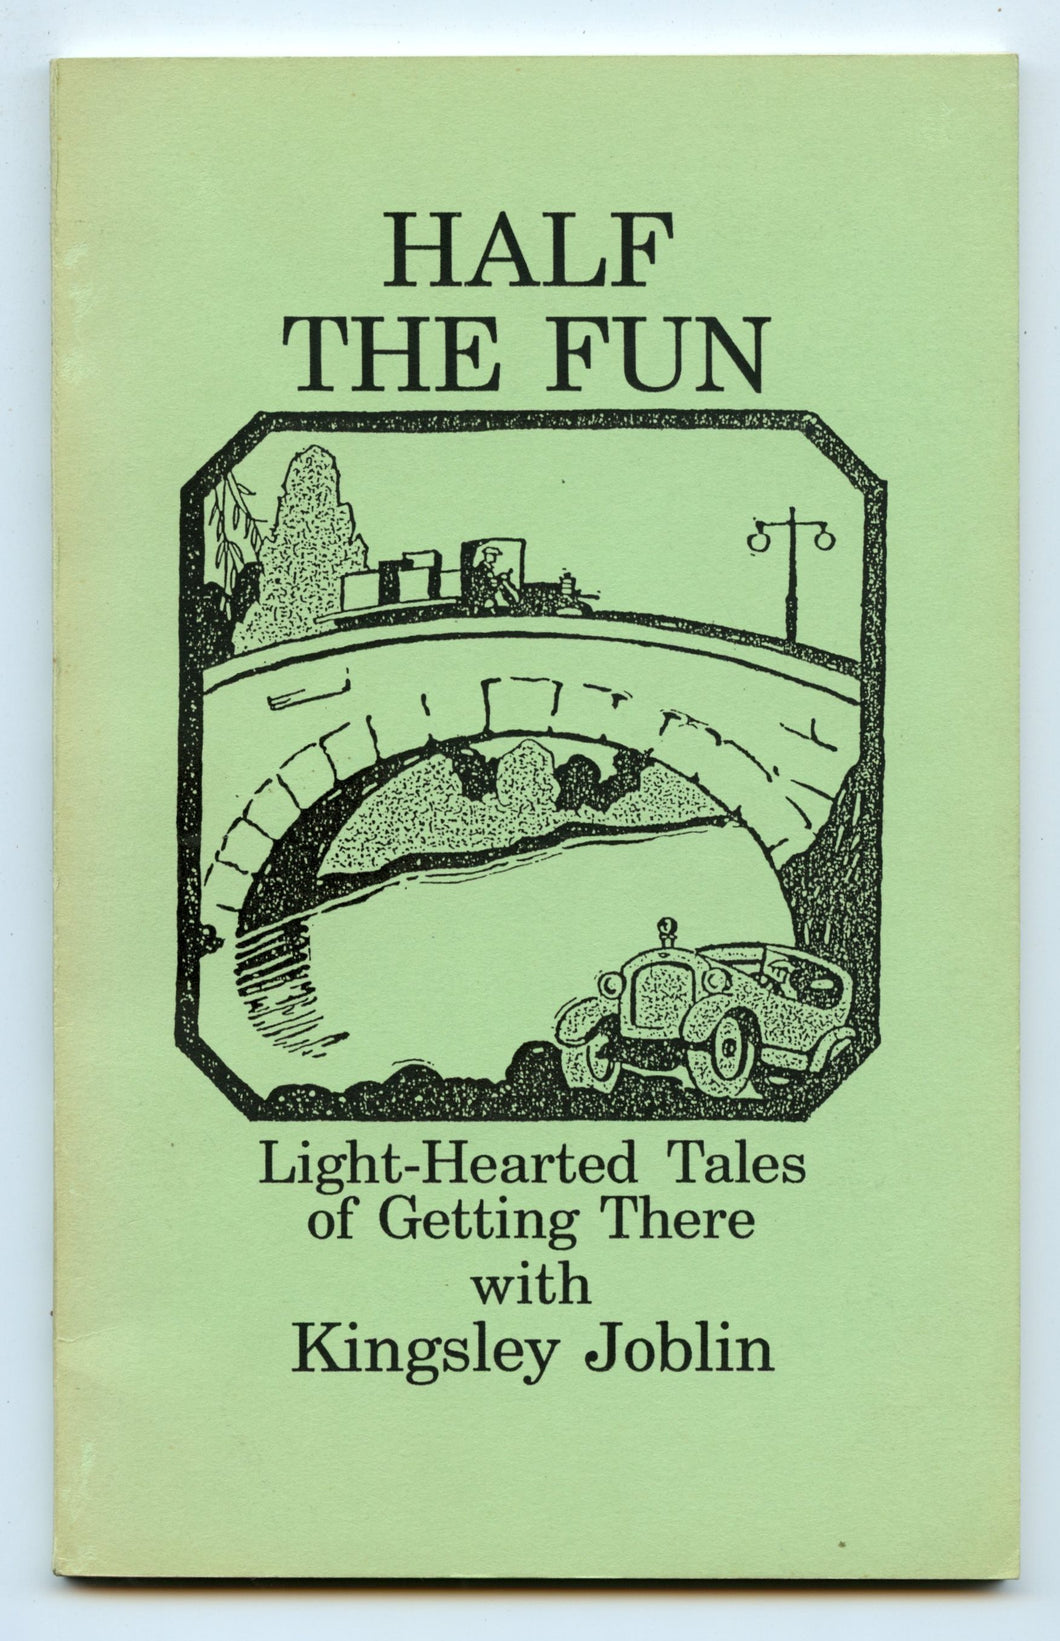 Half The Fun: Light-Hearted Tales of Getting There